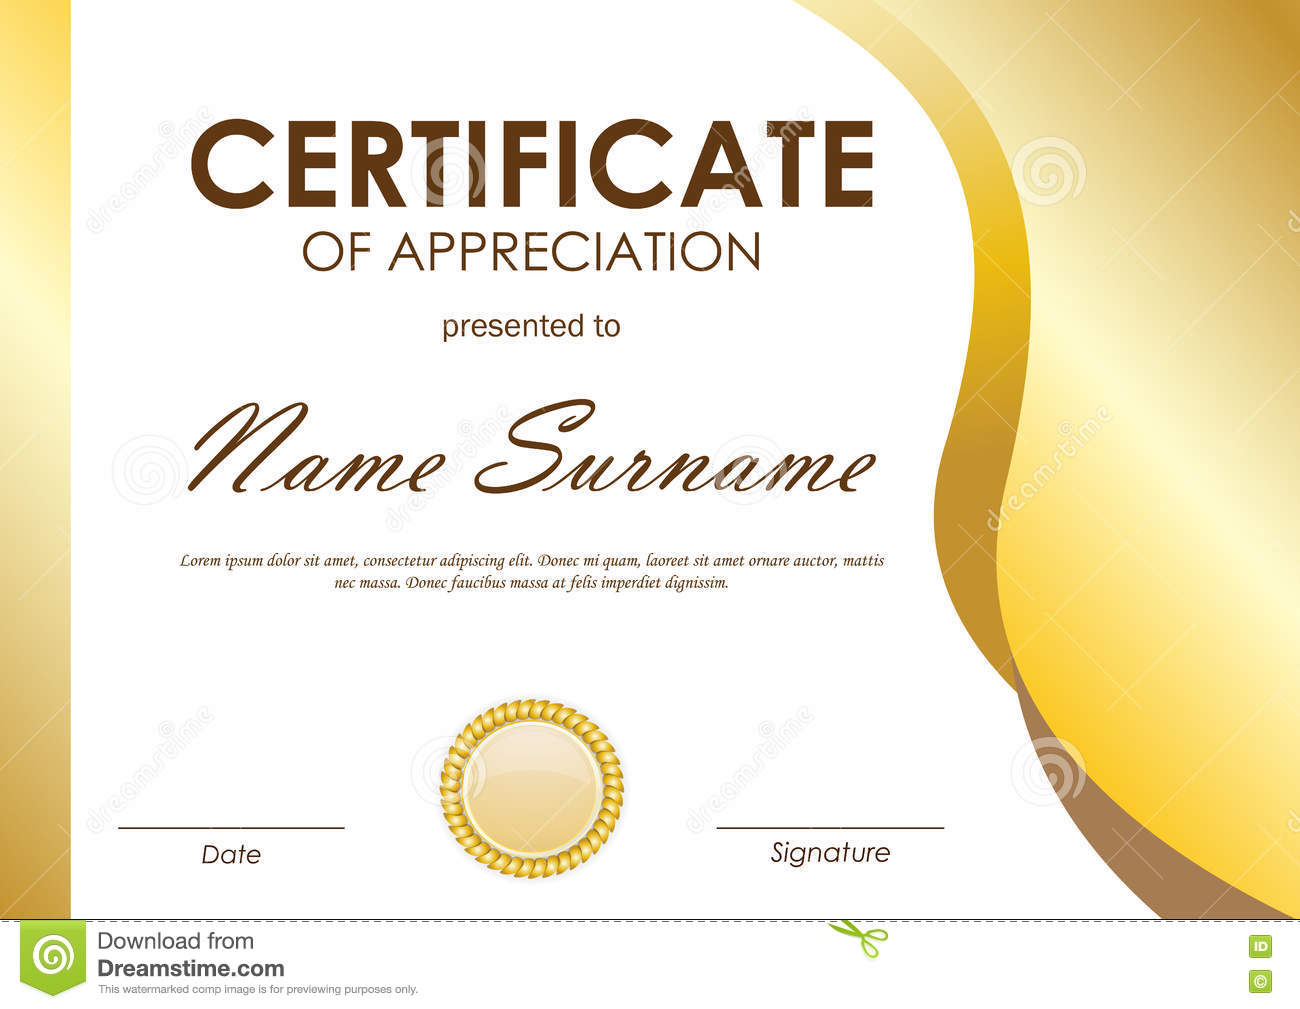 certificate of appreciation template stock vector - image: 81371093, Modern powerpoint